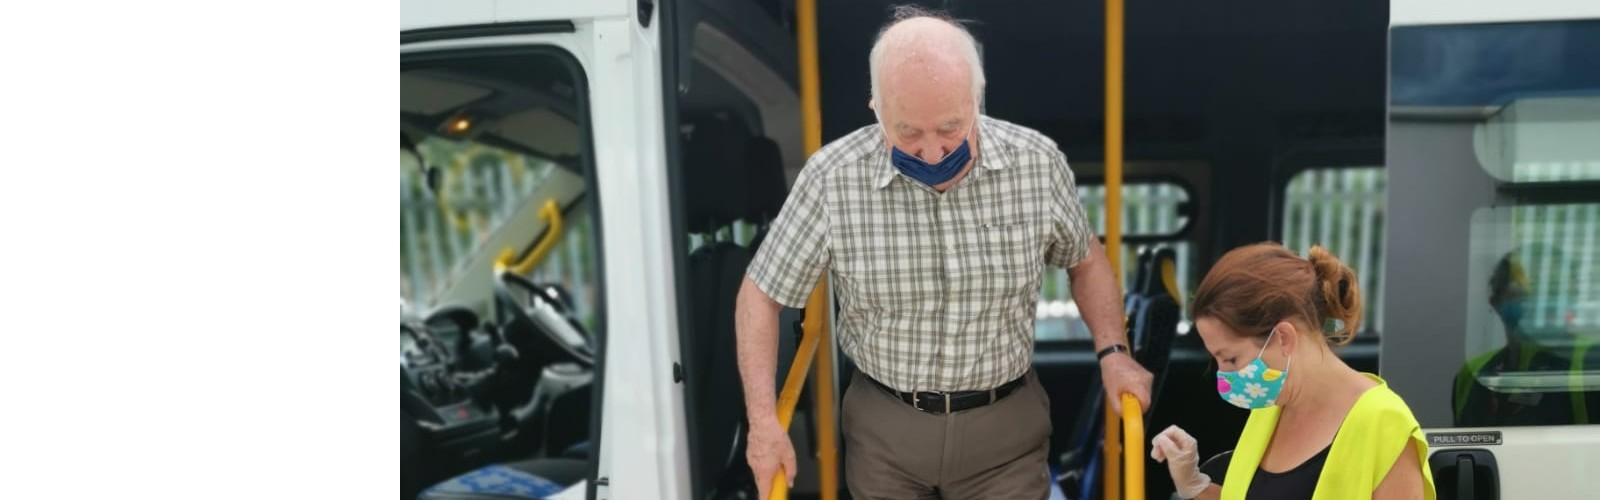 An older man steps out of an Age UK Medway vehicle